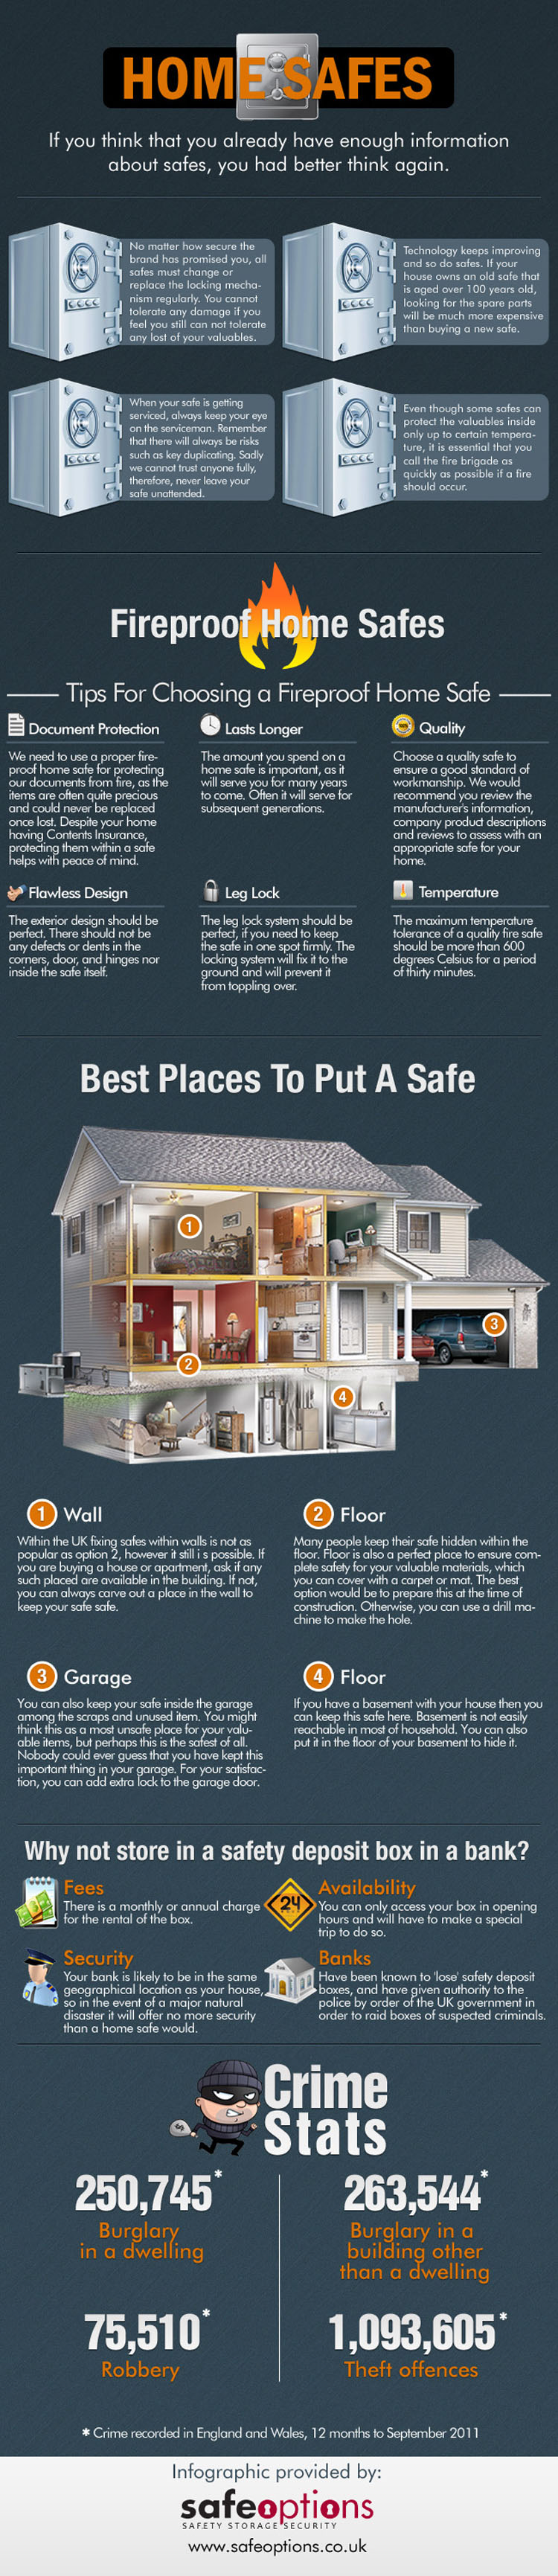 Home Safes - Everything You Need to Know